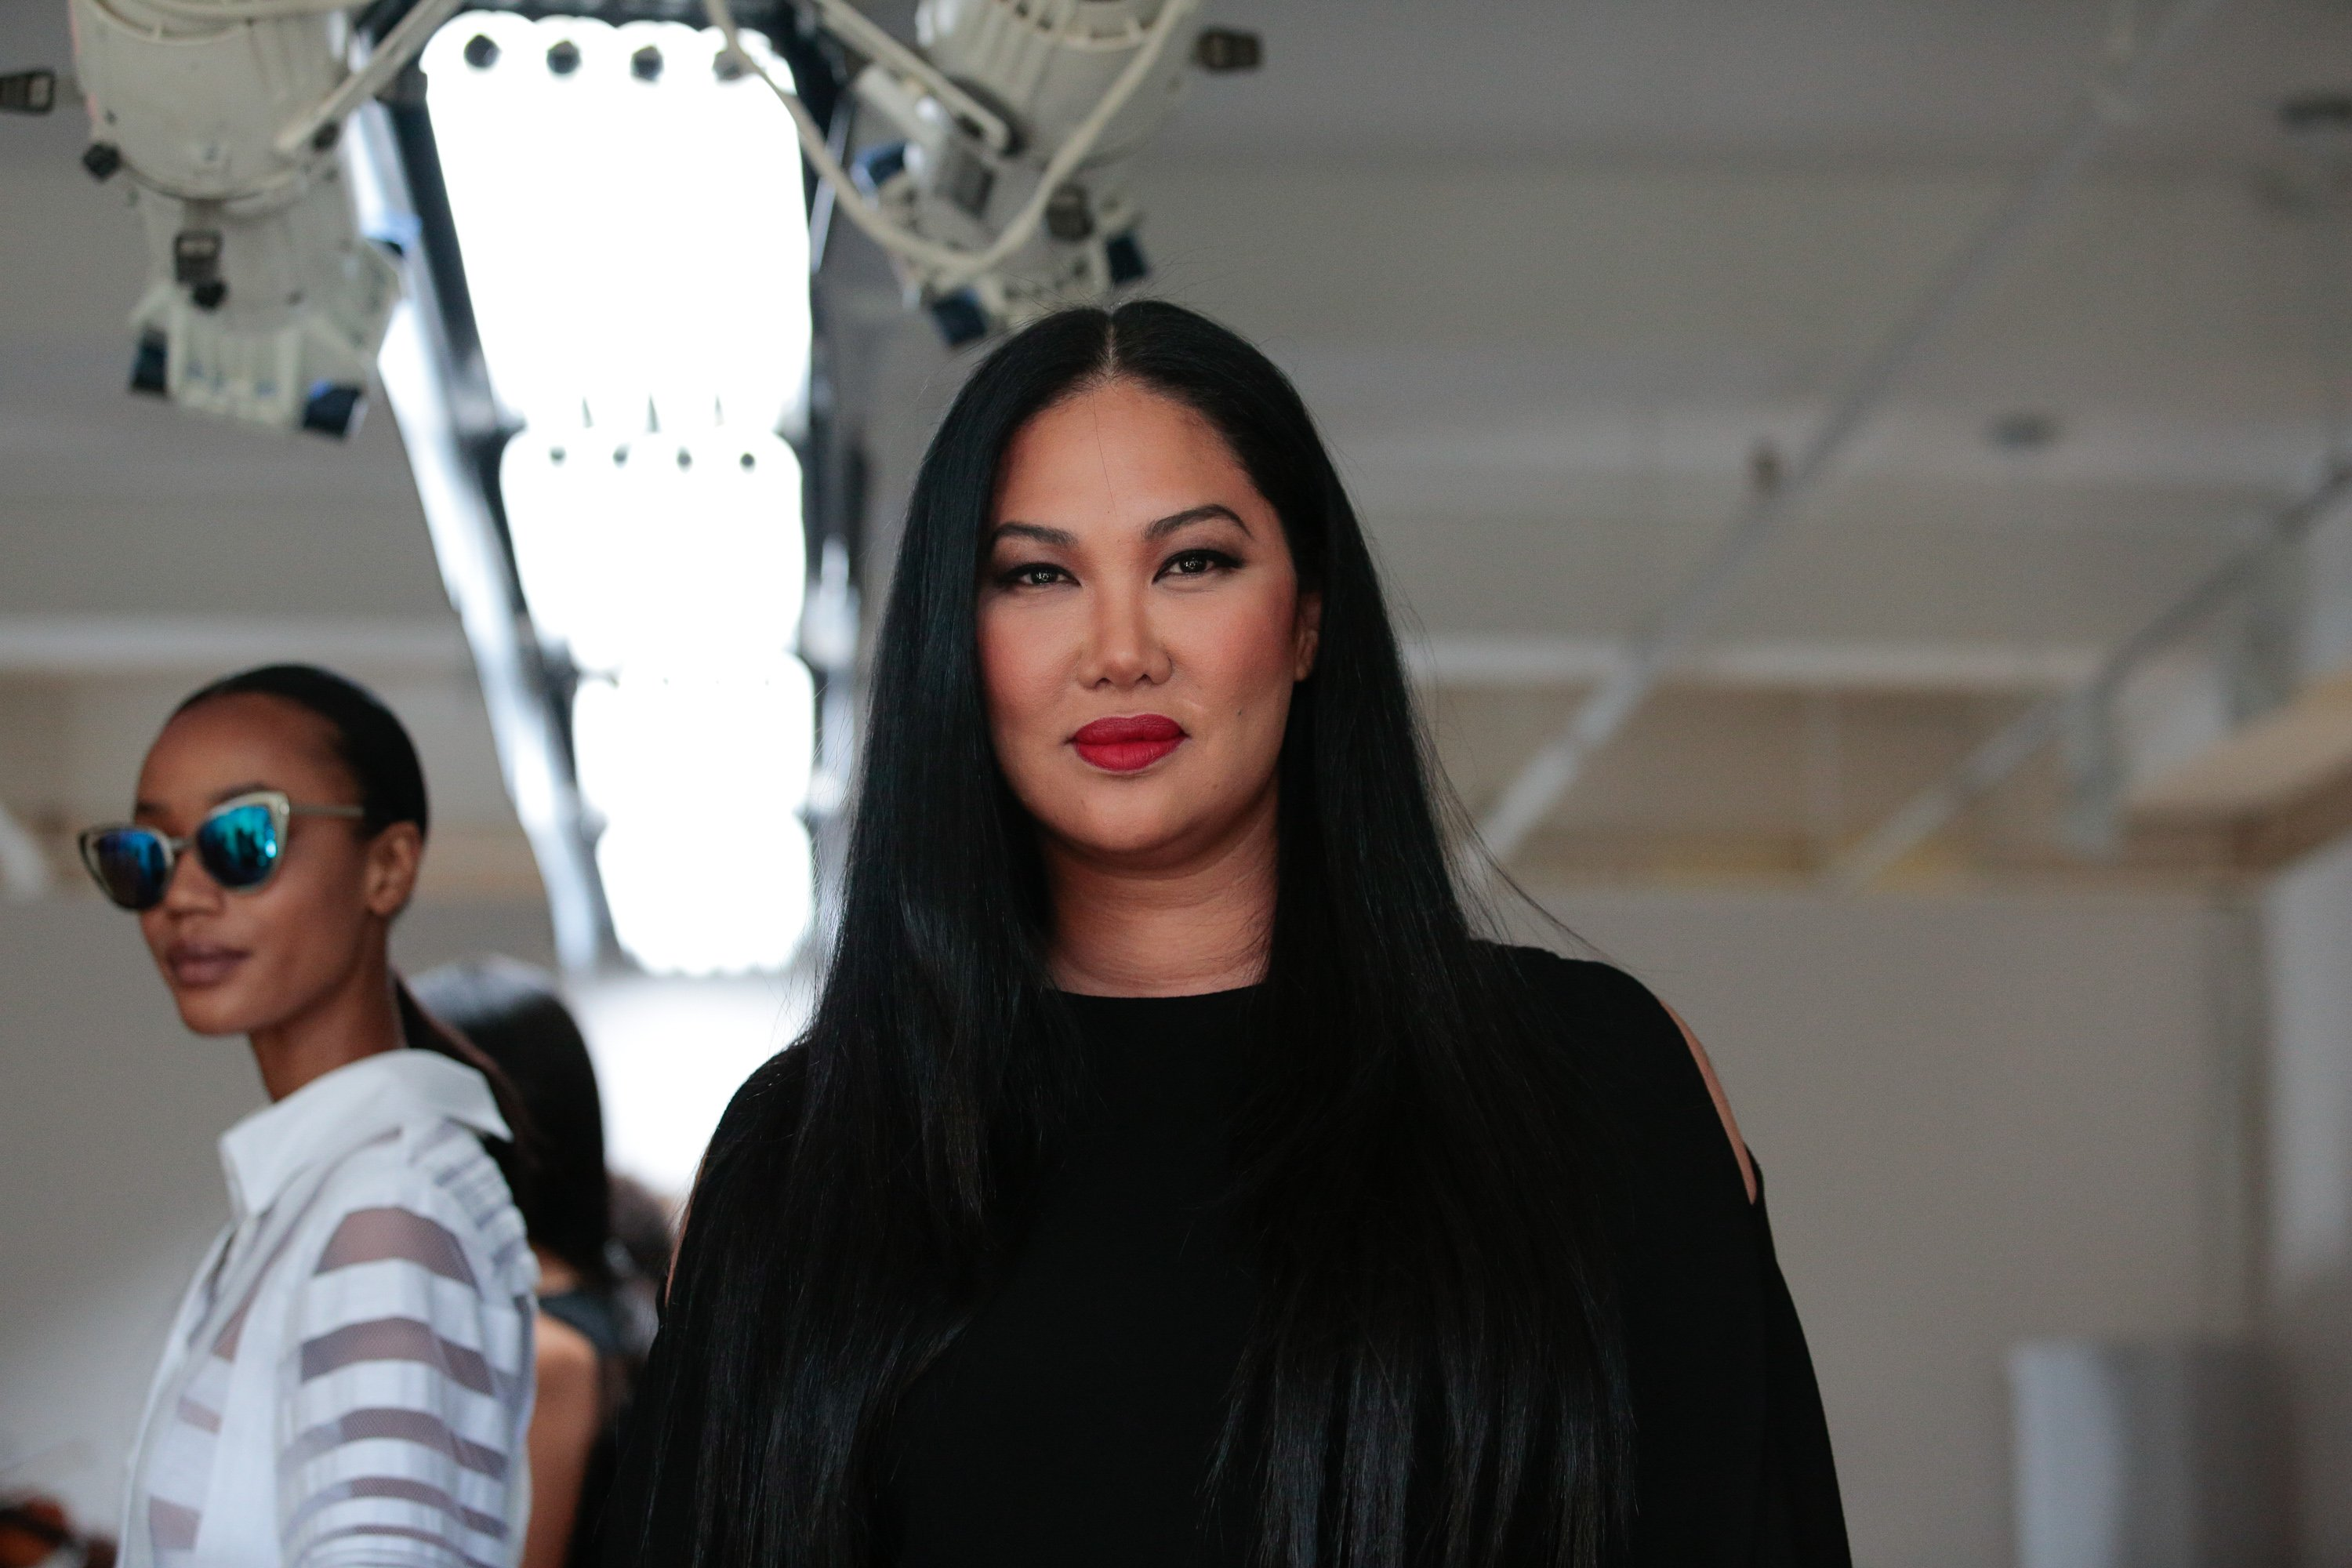 Kimora Lee Simmon during New York Fashion Week at The Gallery, Skylight at Clarkson Sq on September 14, 2016, in New York City. | Source: Getty Images.